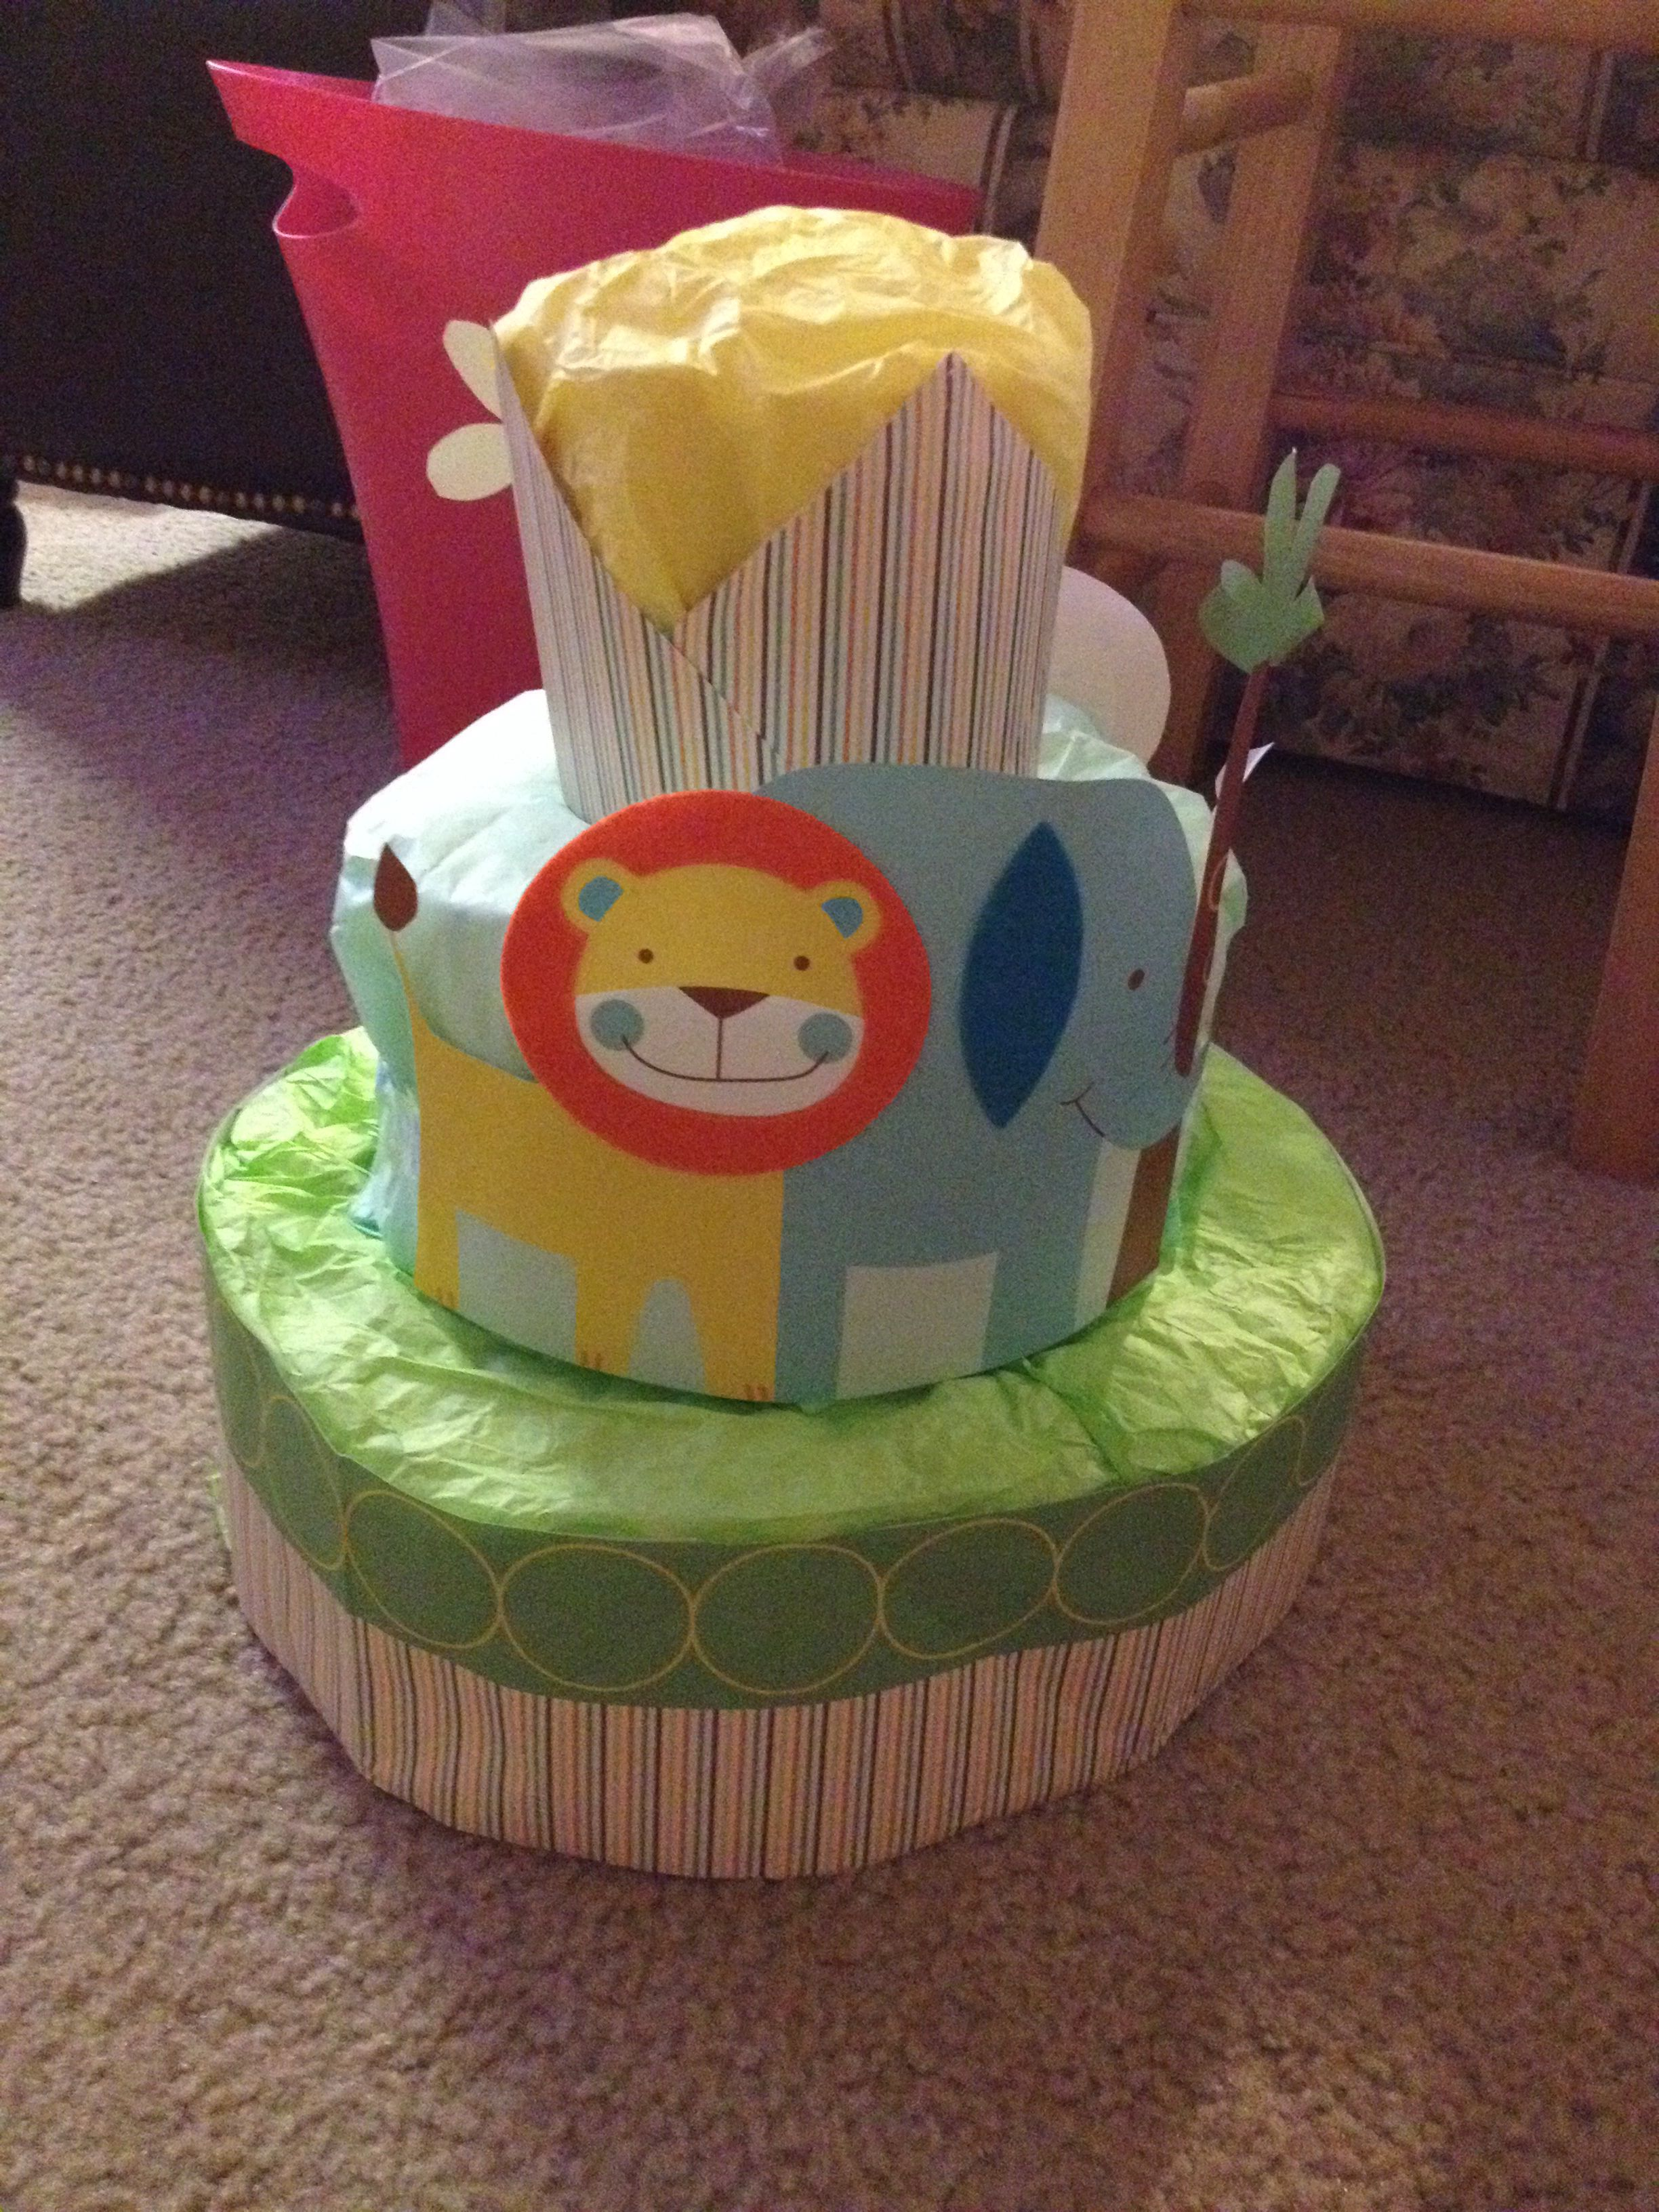 Diaper cake from a gift bag and tissue paper with images